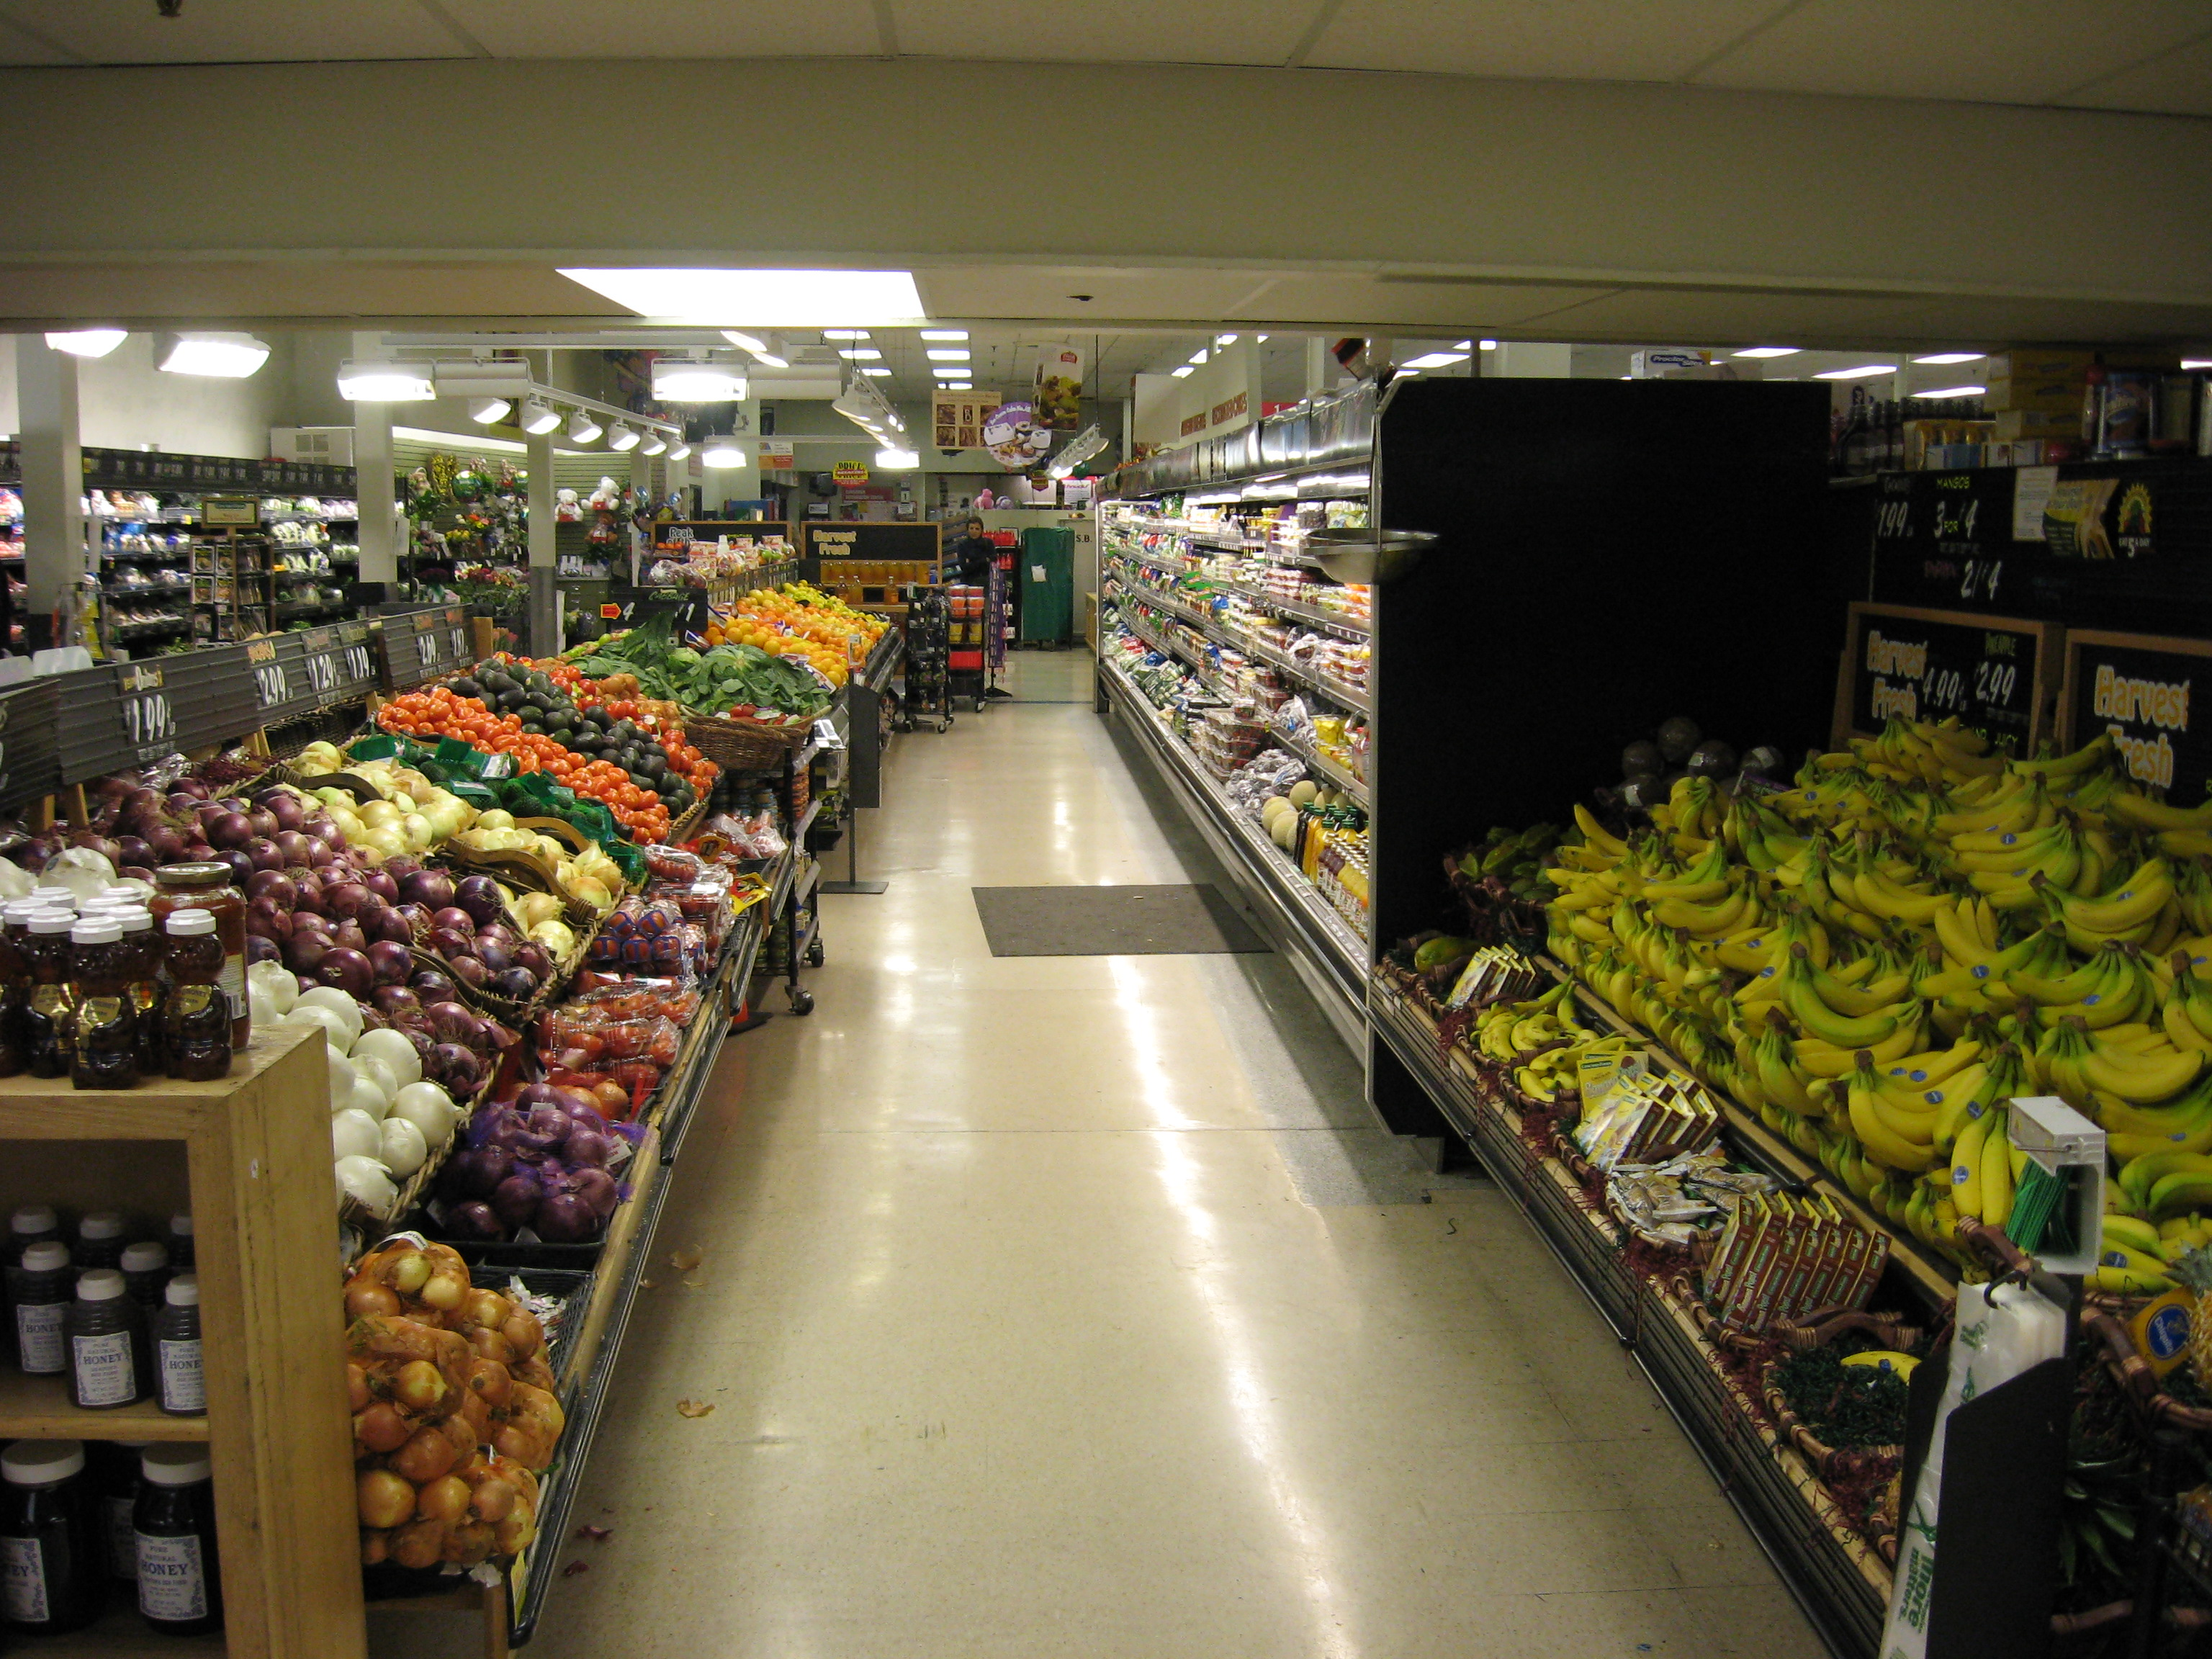 Whole Foods Market Supplier Undercover Investigations